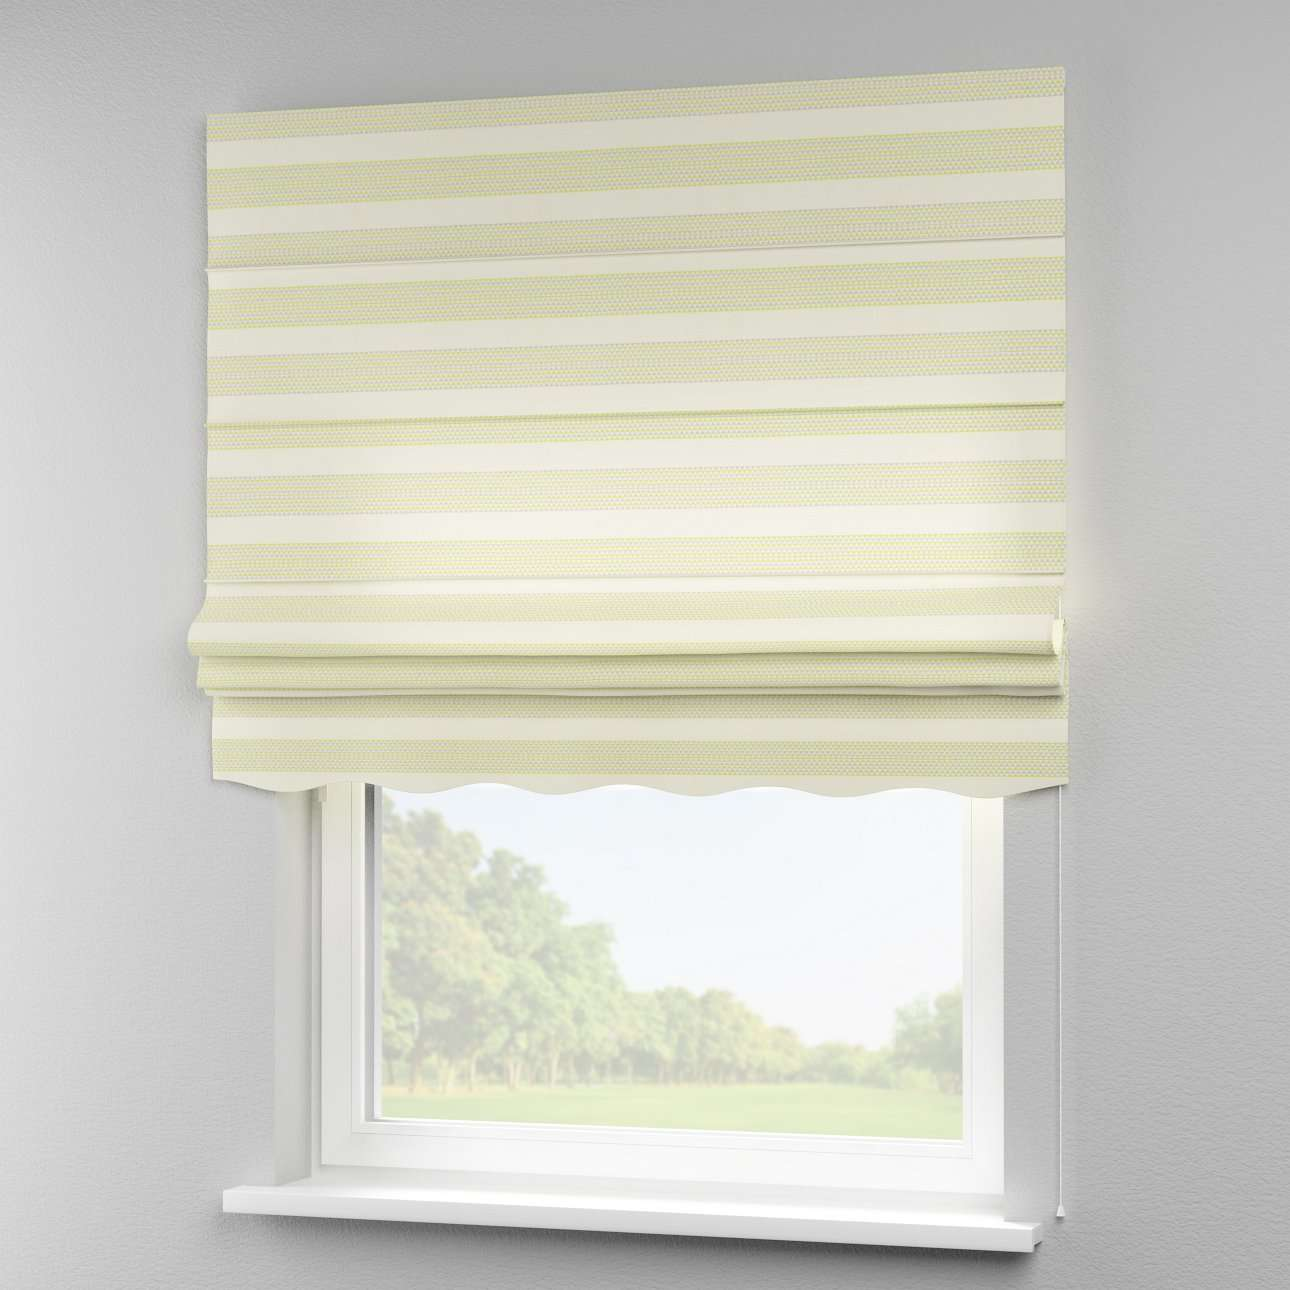 Florence roman blind  80 × 170 cm (31.5 × 67 inch) in collection Rustica, fabric: 140-35